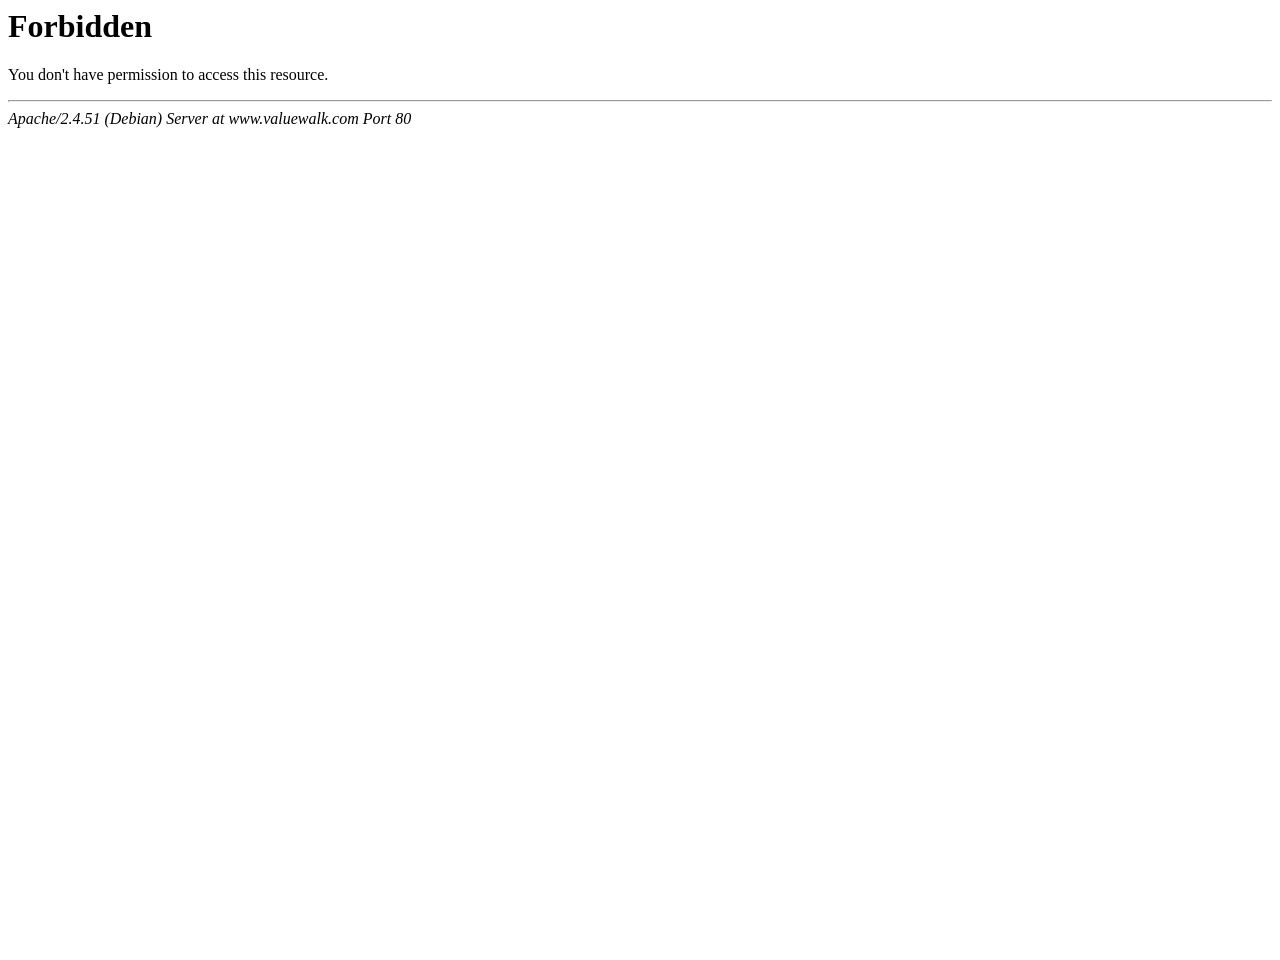 Swiss Bank's Surprise Move Reveals Global Currency Crisis